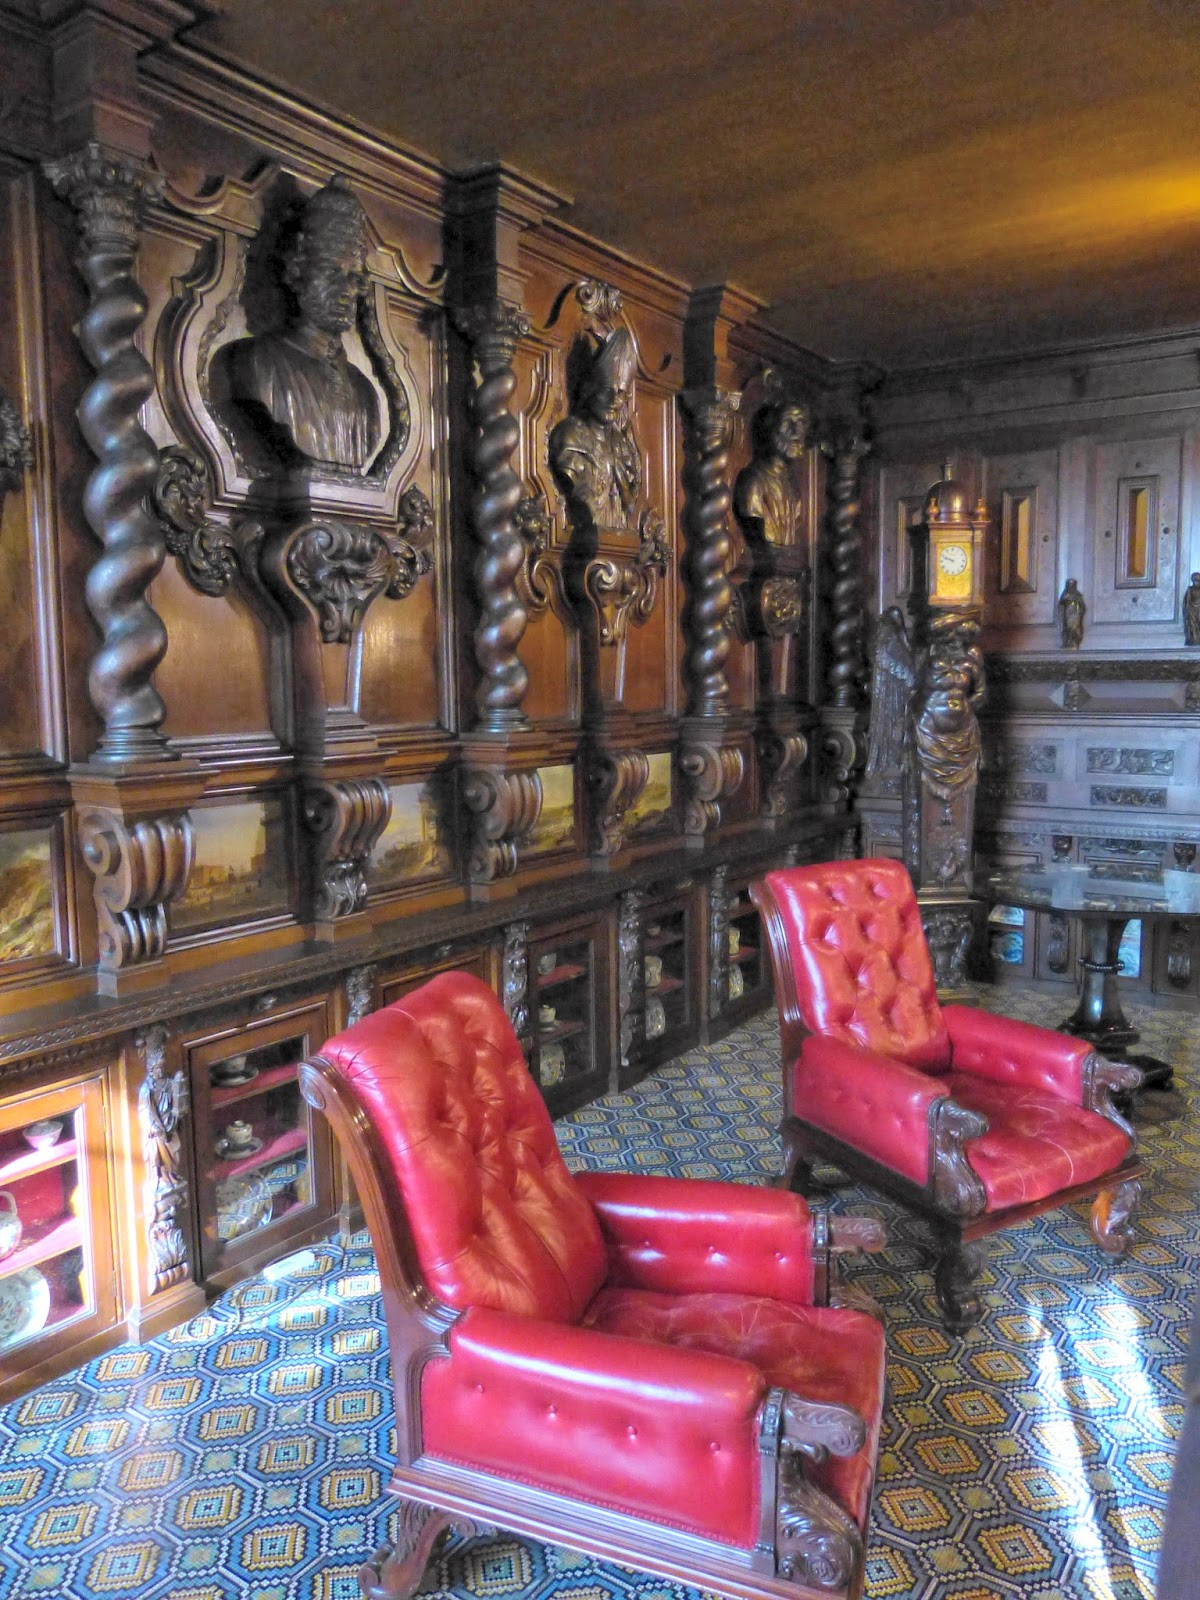 Chatsworth House Room: A Photo Tour Of The Home Of